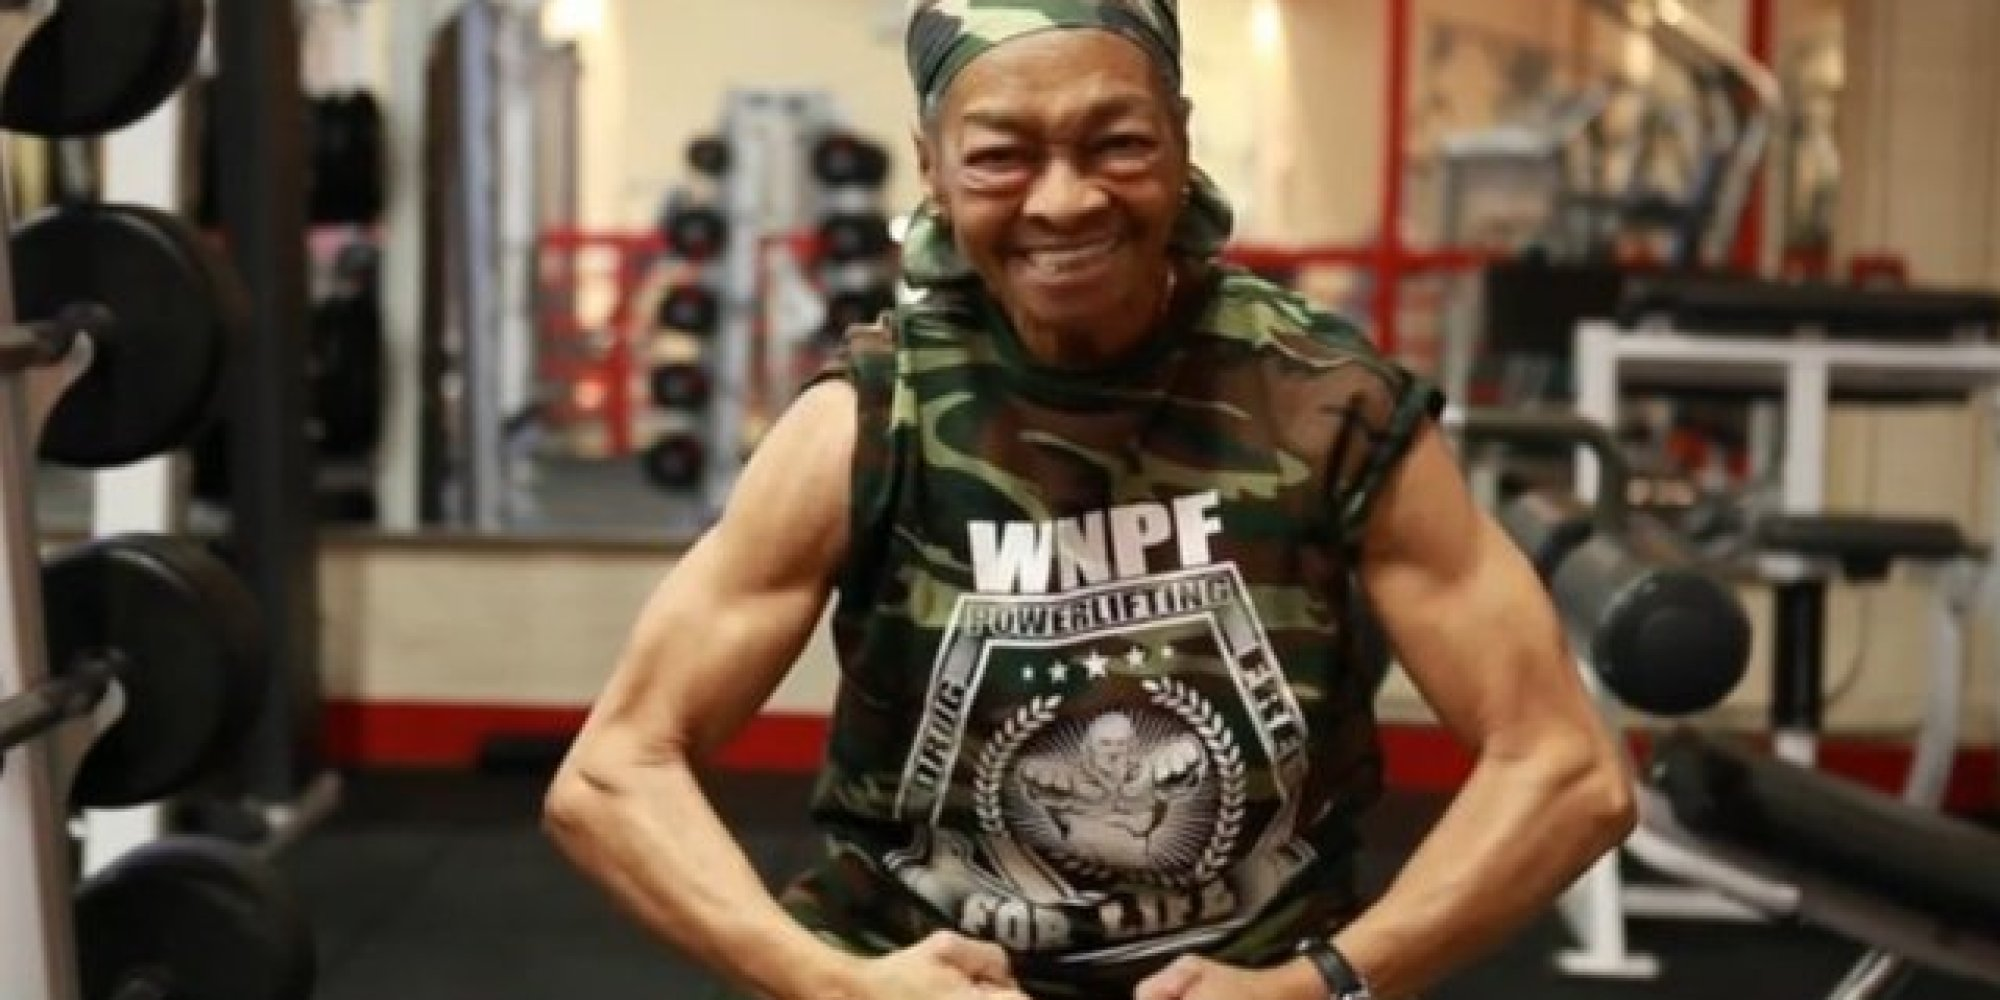 Willie Murphy Is A Champion Body Builder At Age 77 Huffpost